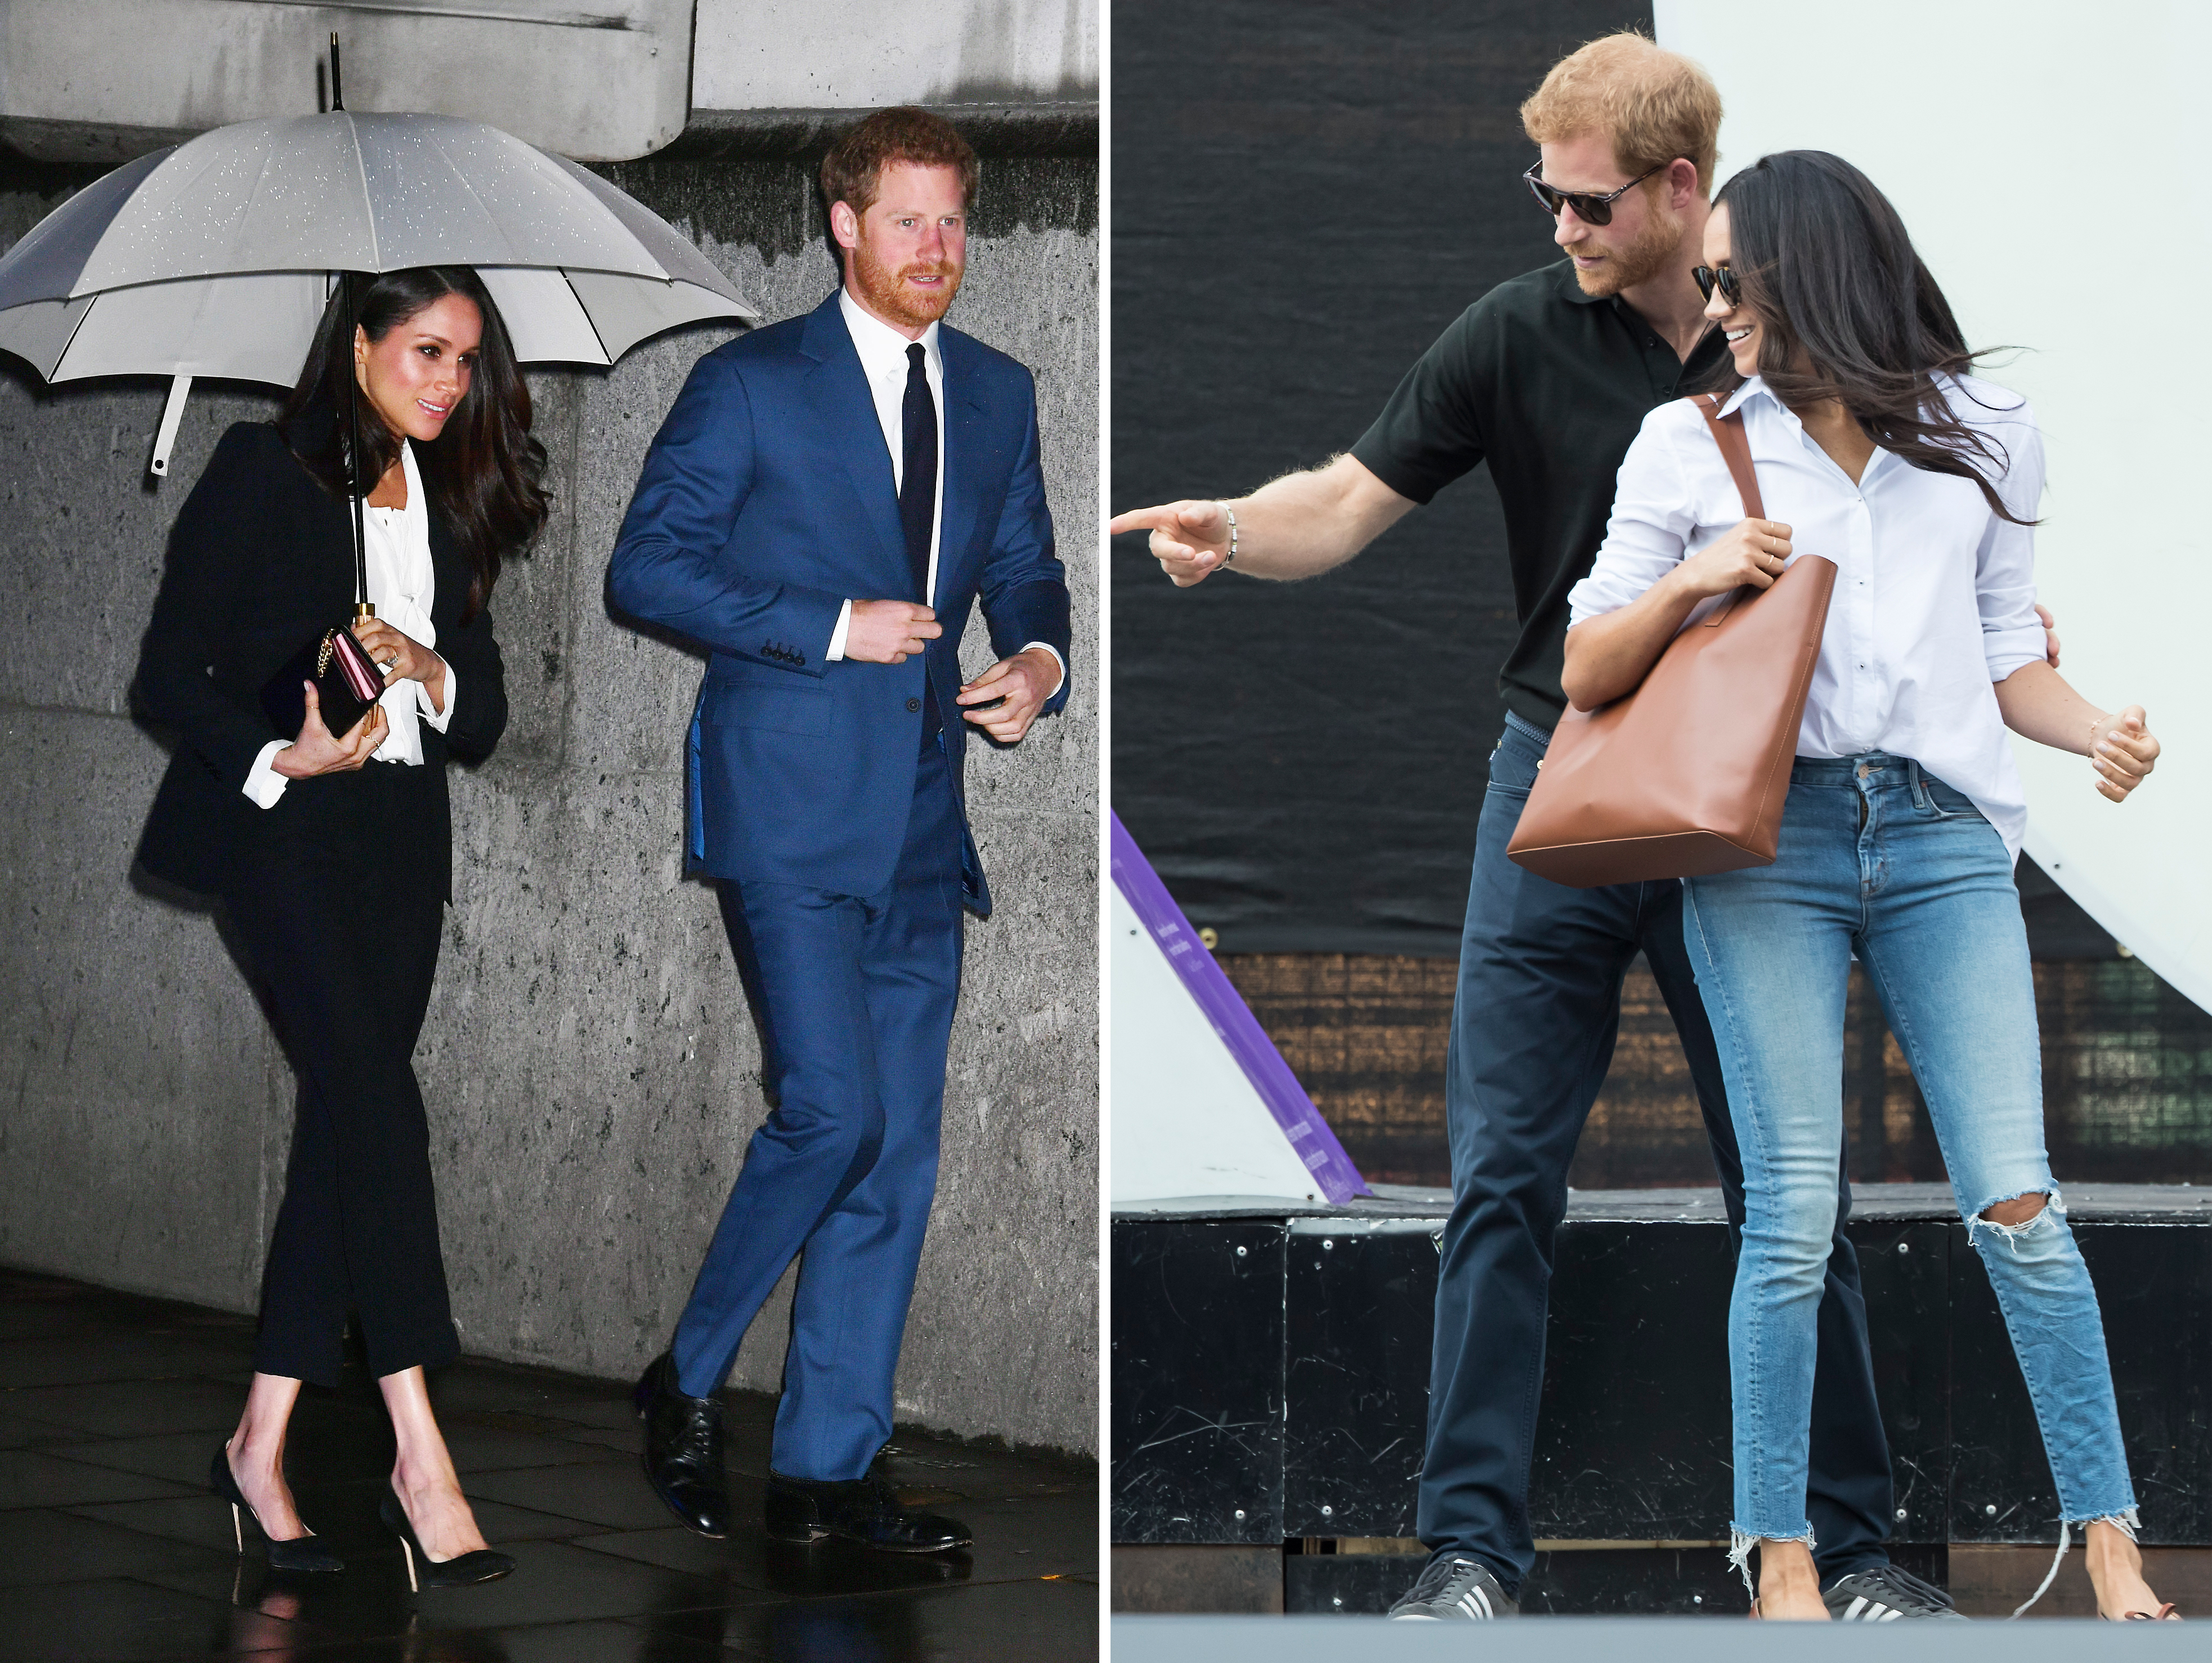 Guide to Harry, Meghan Markle royal wedding on May 19